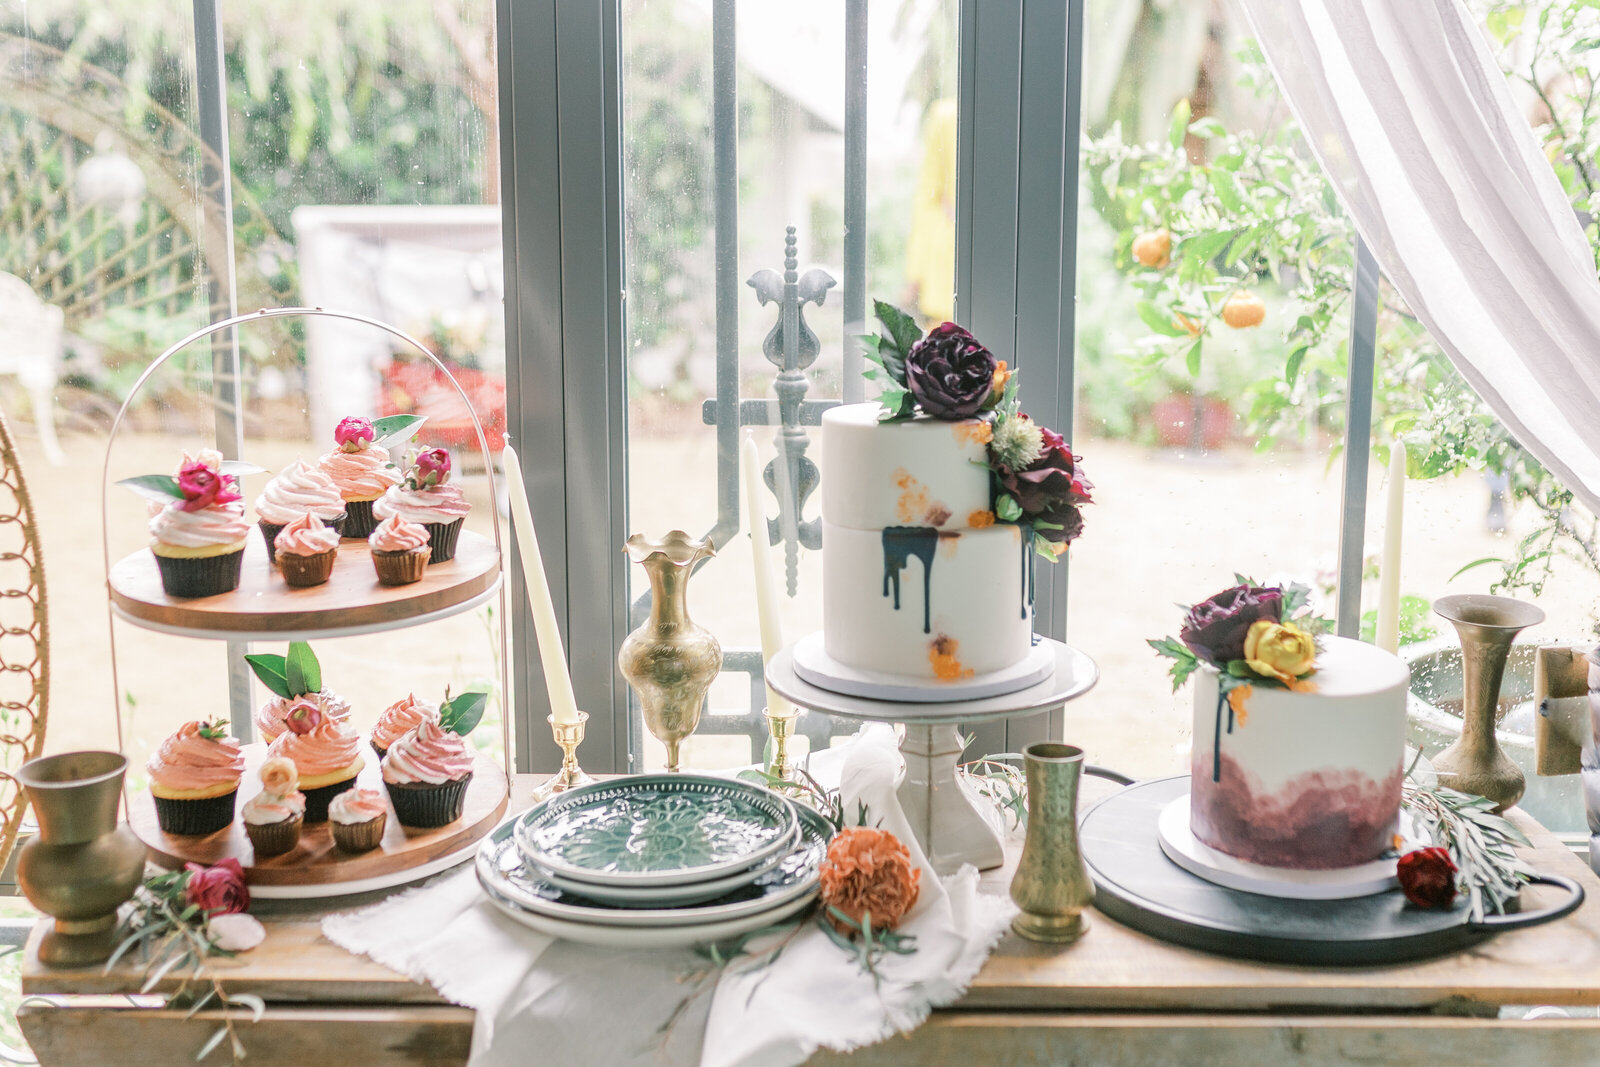 Dessert table with cakes, cupcakes, and florals